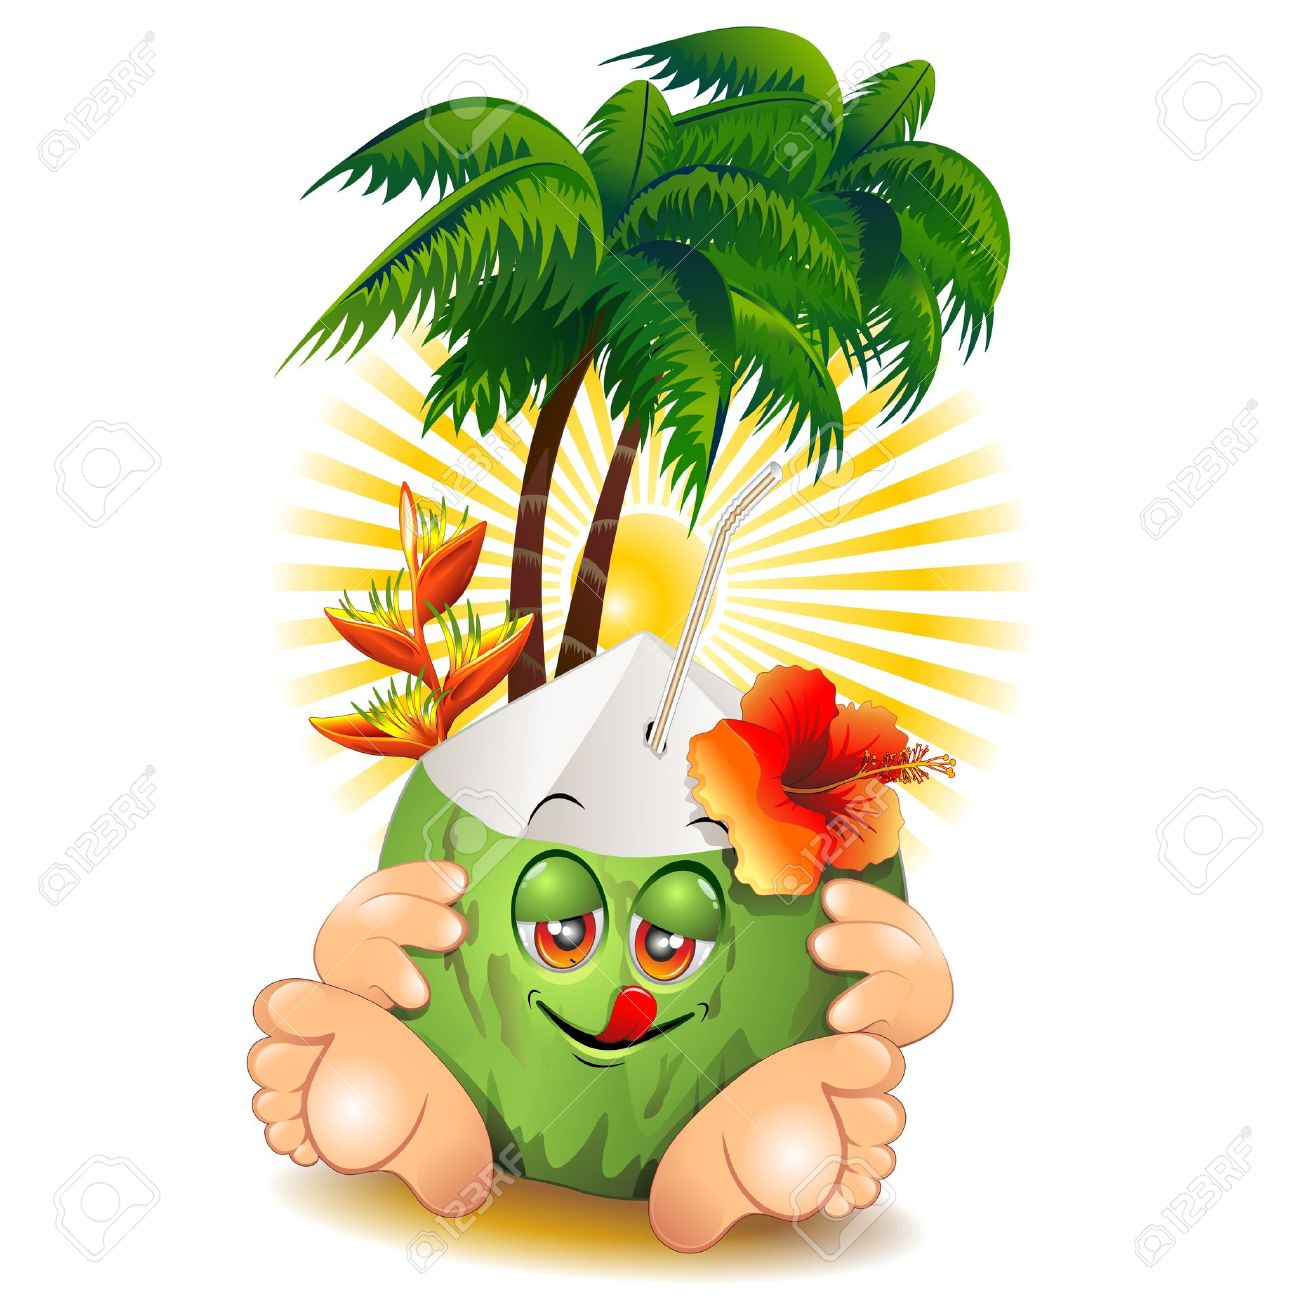 Green Coconut Cartoon Character and Palm Trees Stock Vector - 19872108